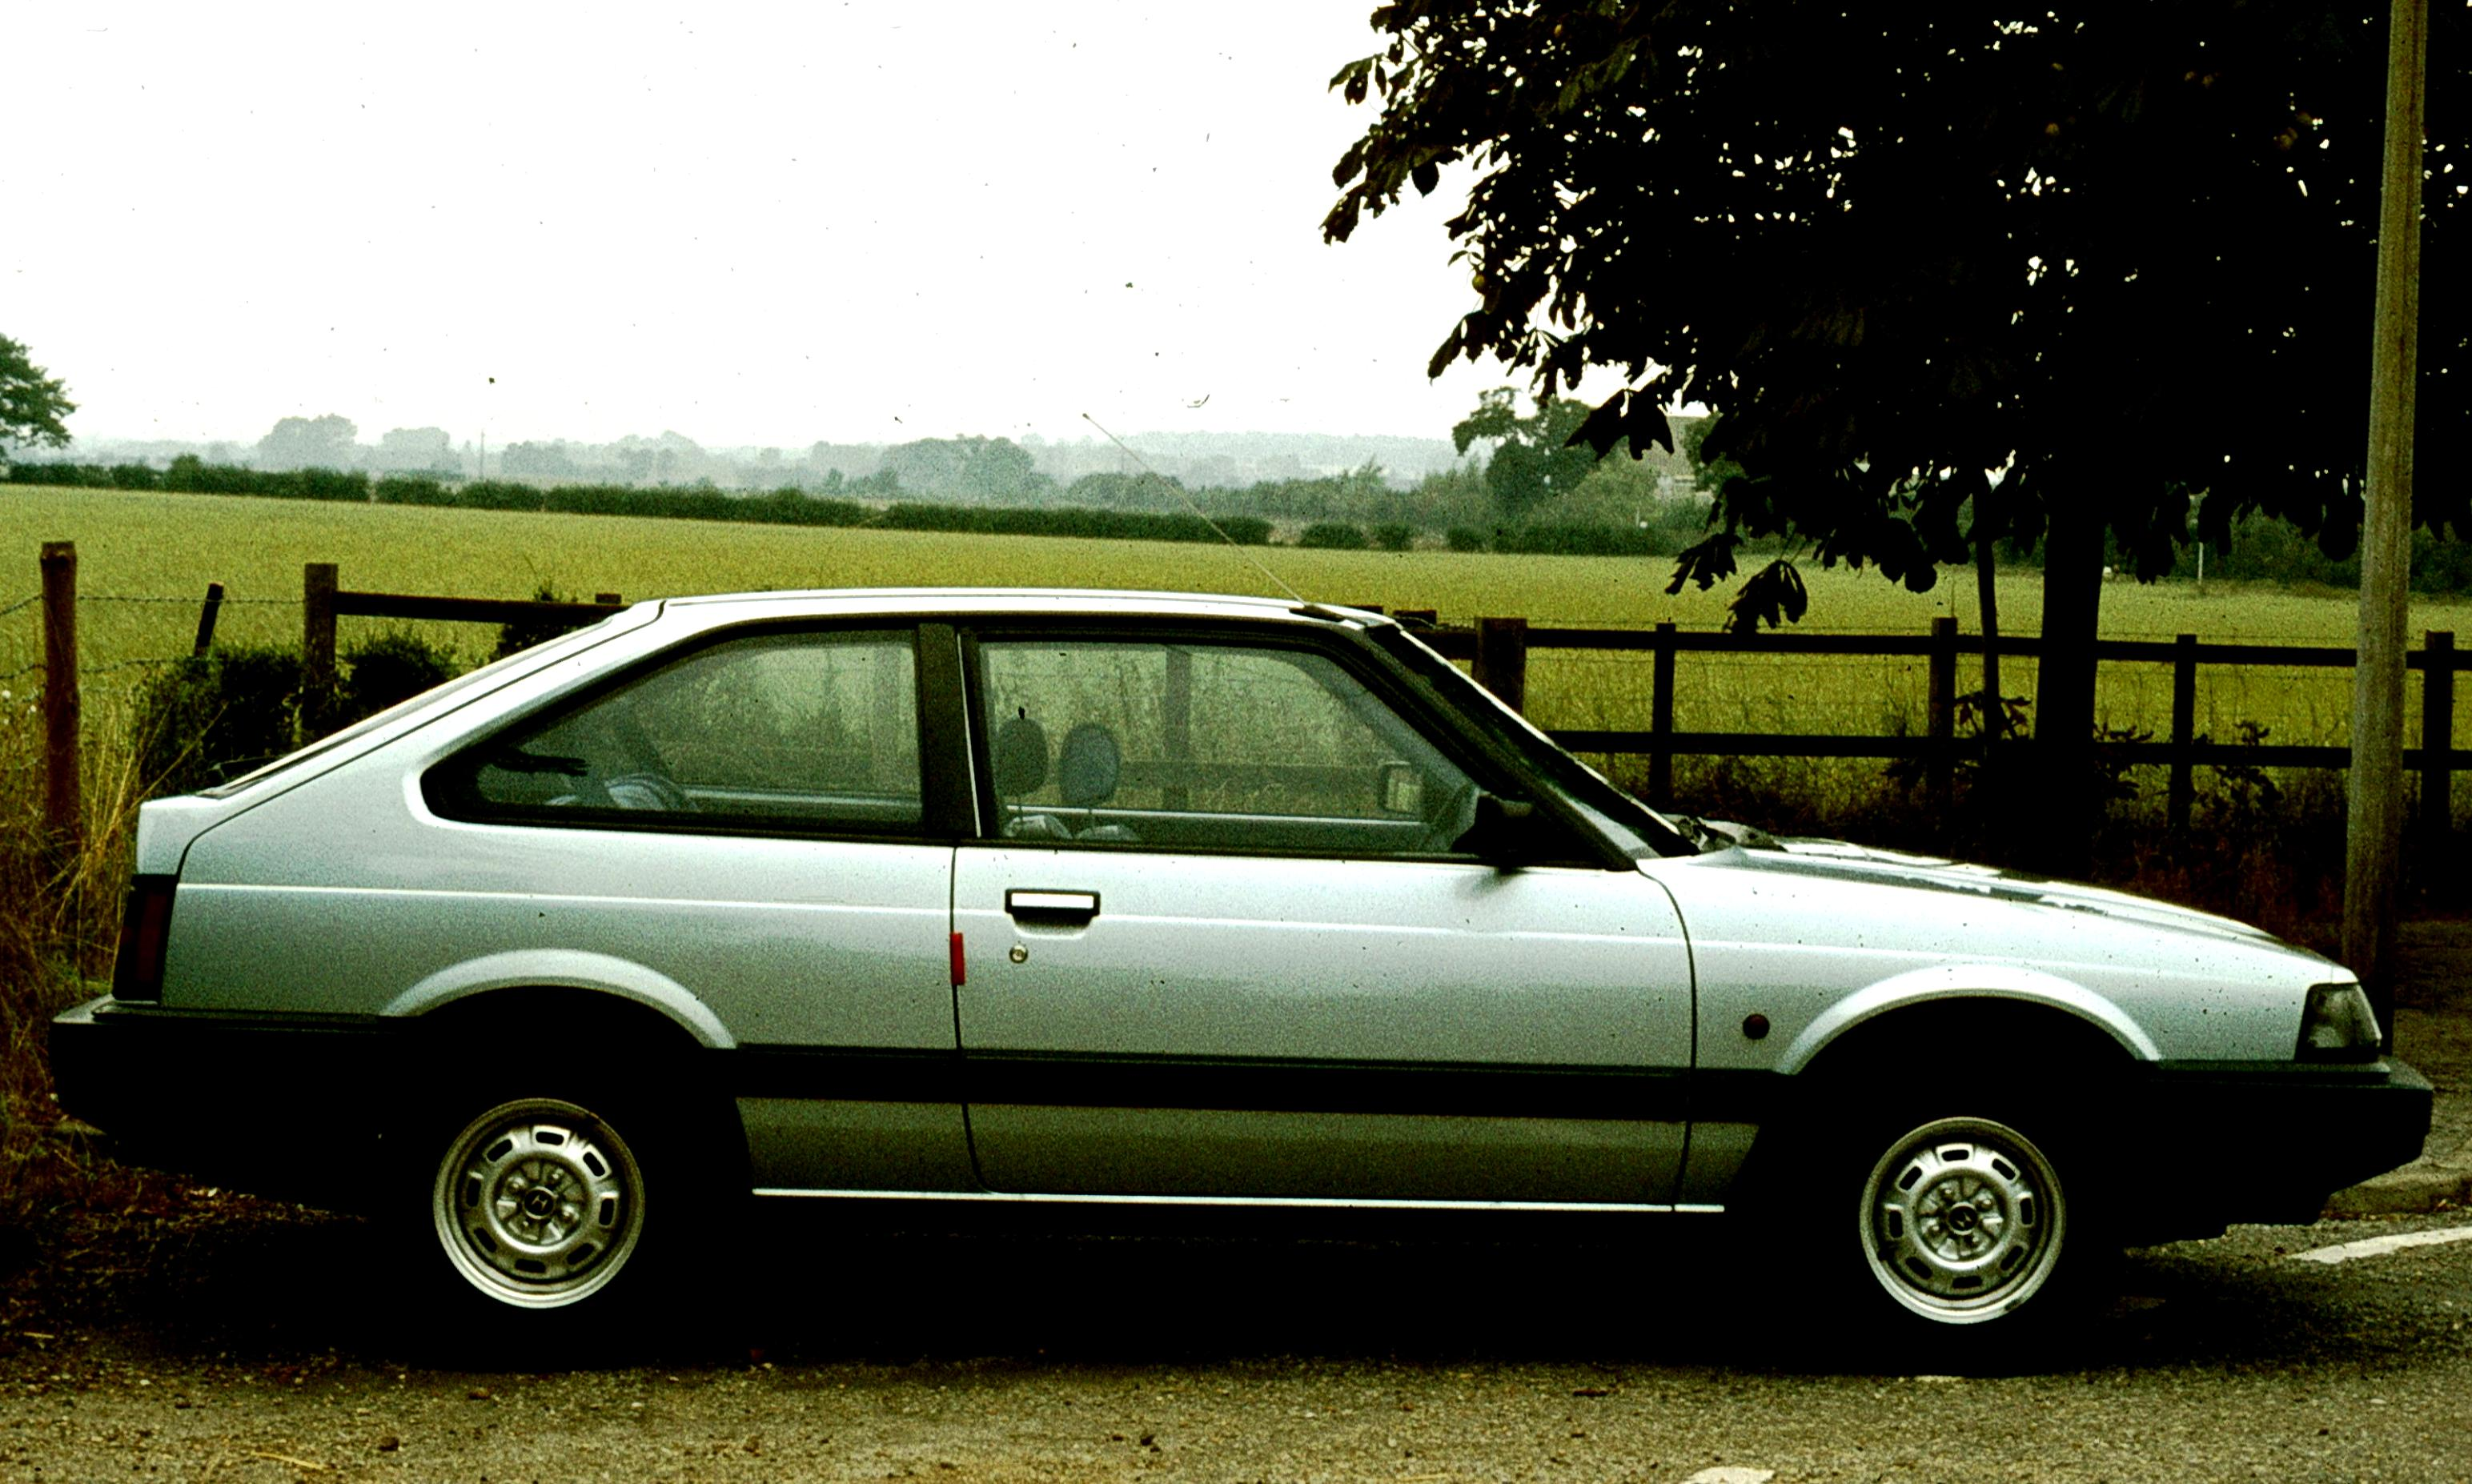 Honda Accord 4 Doors 1989 #9